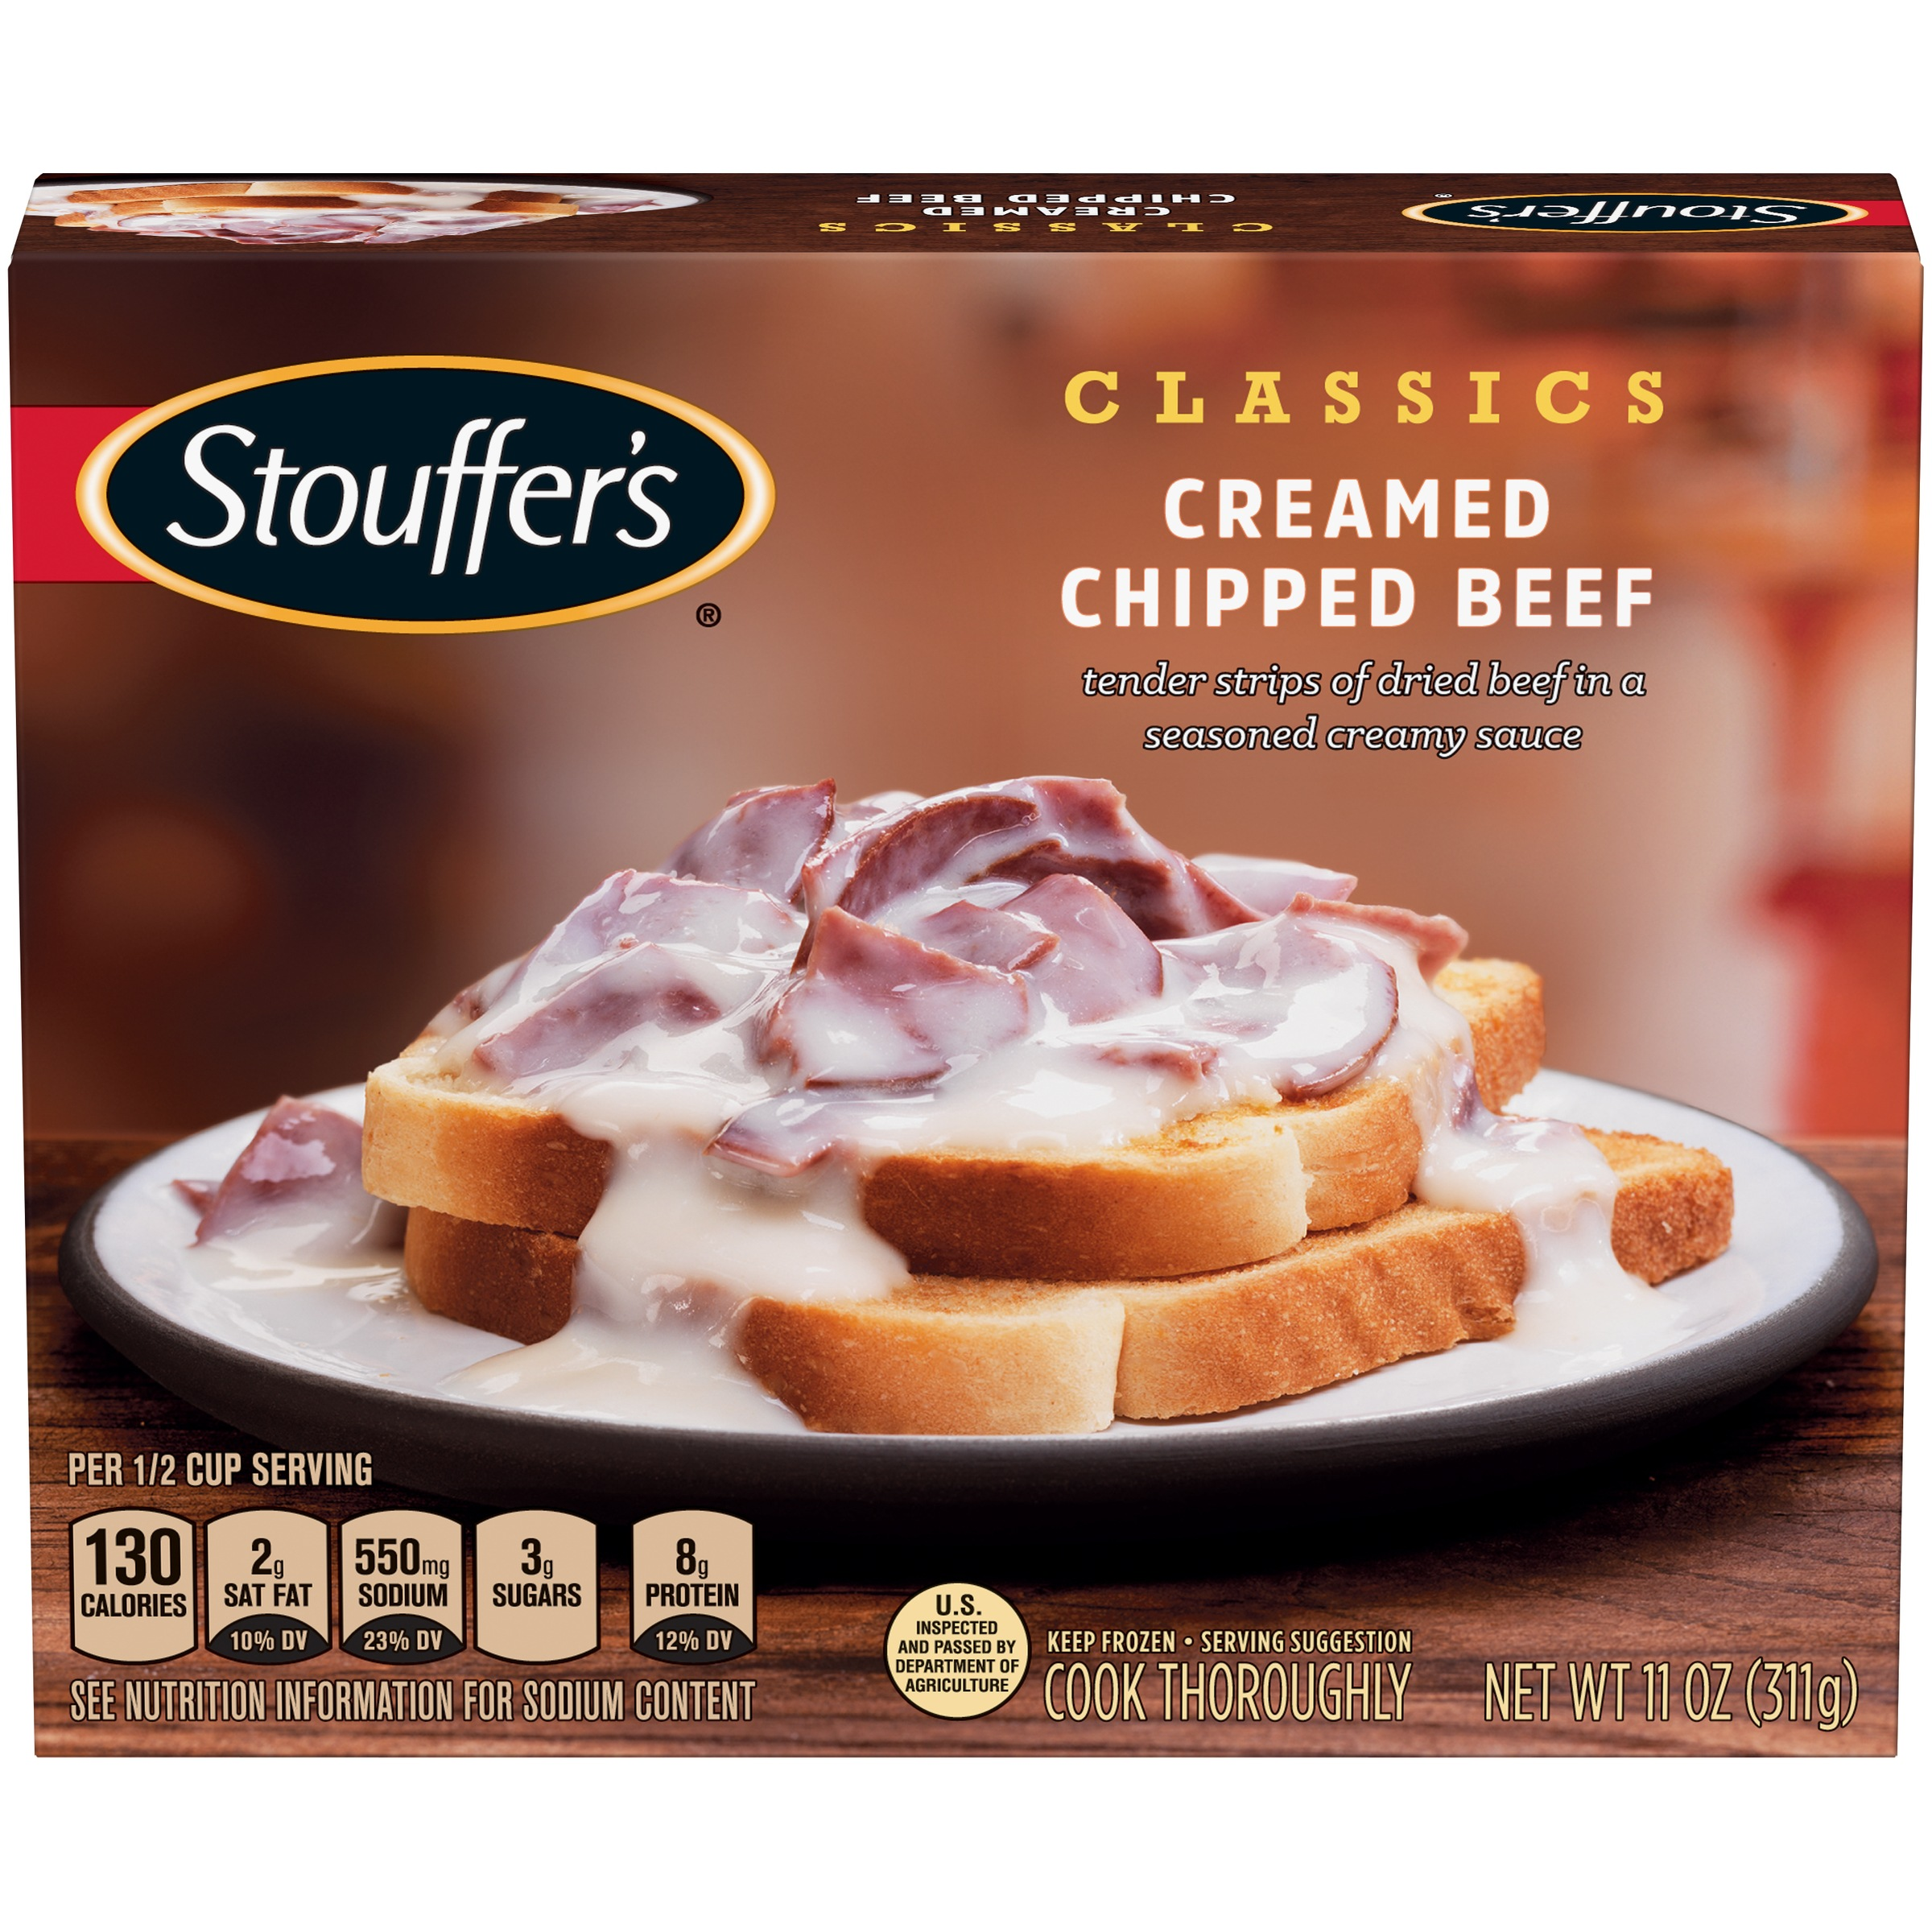 STOUFFER'S Classics Creamed Chipped Beef 11 oz Box